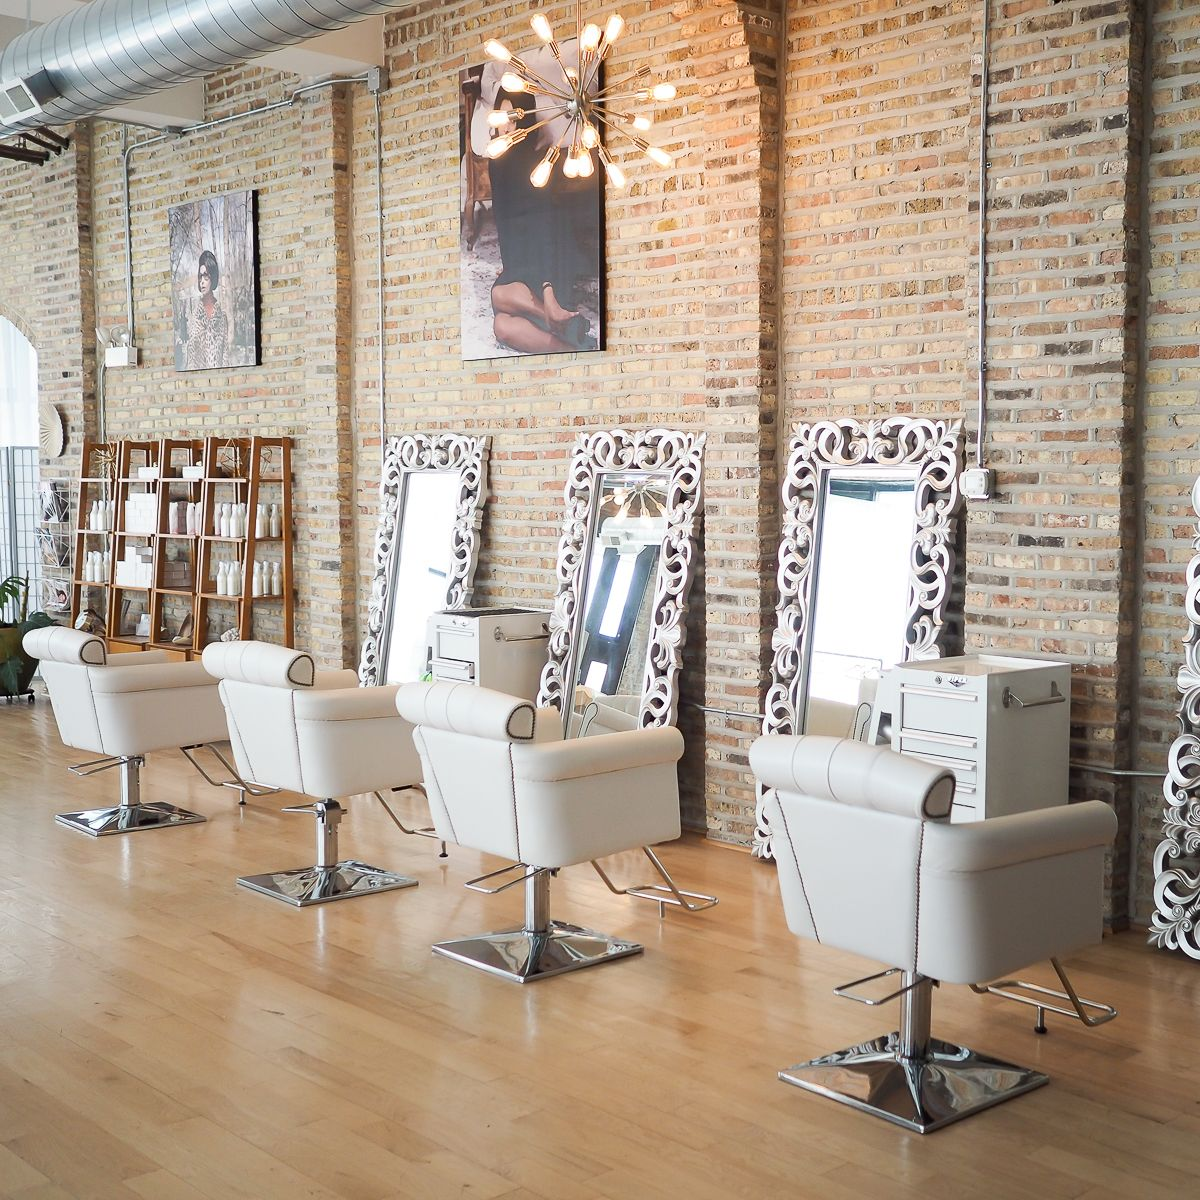 Our Chicago Makeup Studio. We Offer Makeup Classes, Weddings, Bridal Makeup,  Airbrush Makeup And All Other Makeup Studio Services.